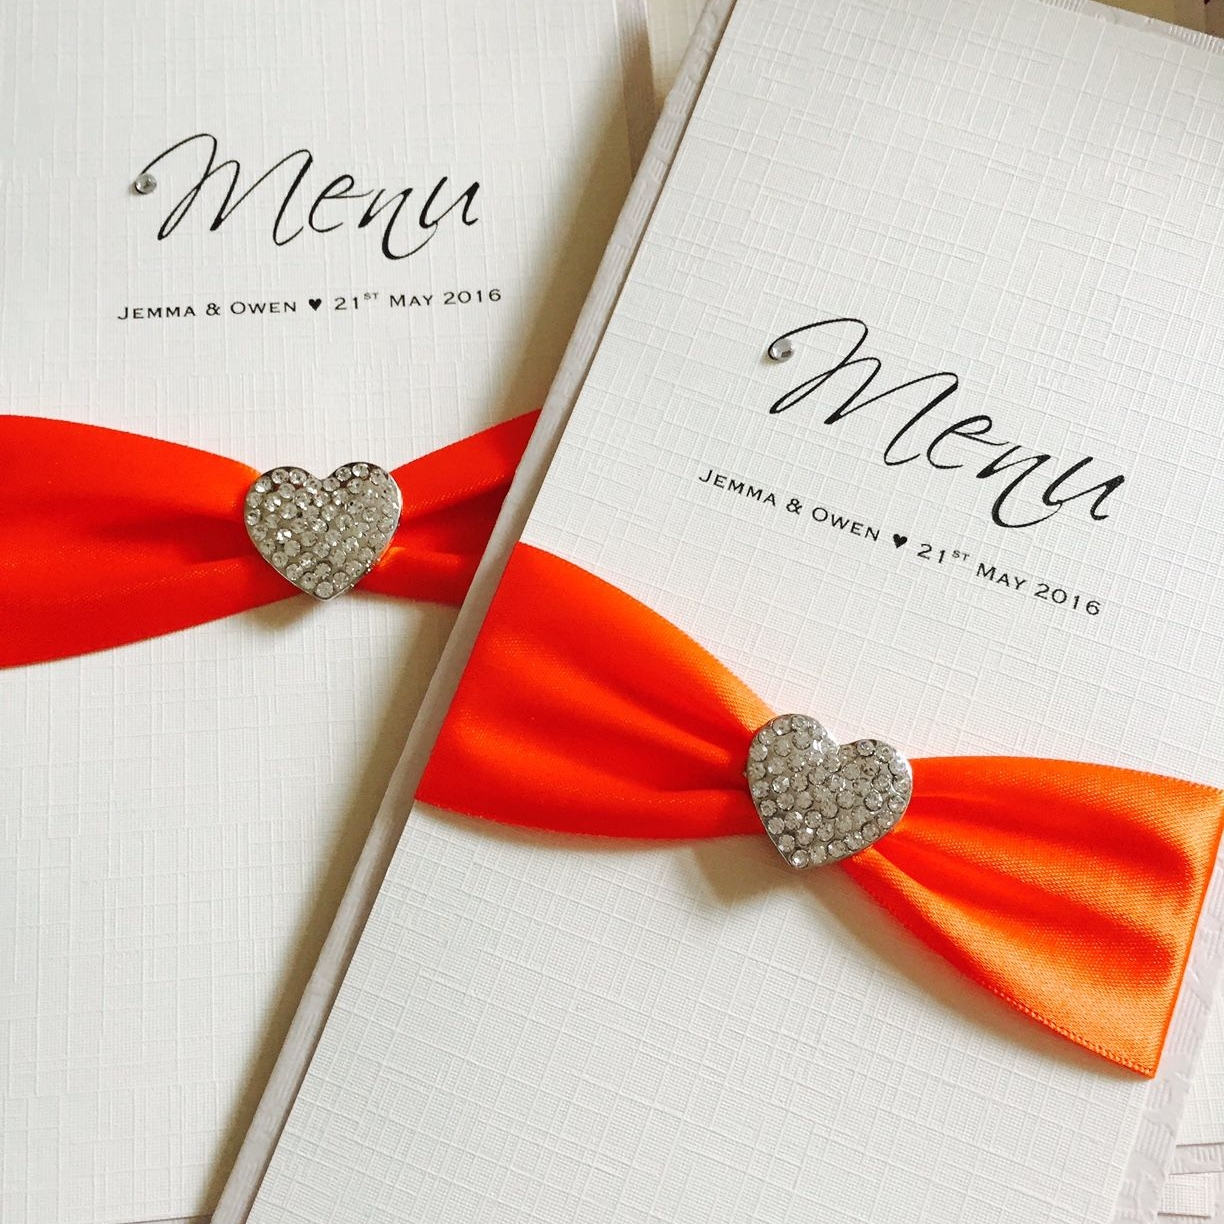 Luxury wedding breakfast menus with diamante heart